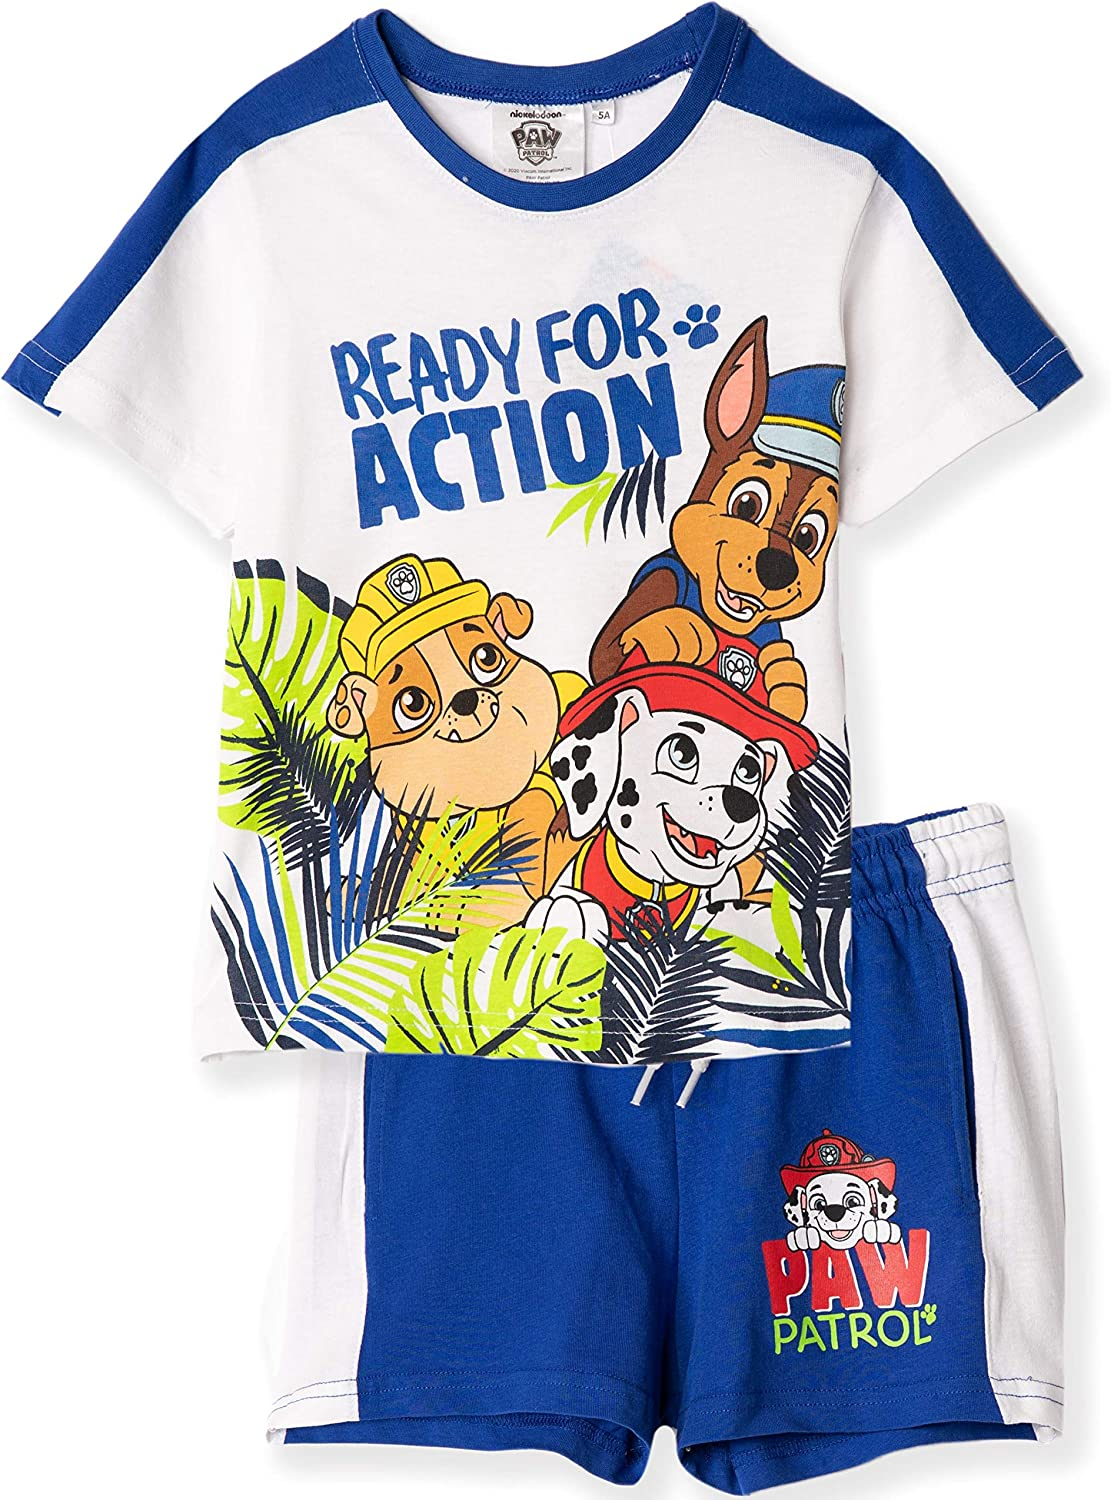 Nickelodeon Paw Patrol Official Boys Summer Outfit Set Short Sleeve Top T-Shirt and Shorts 100/% Cotton 2-6 Years Holiday Theme